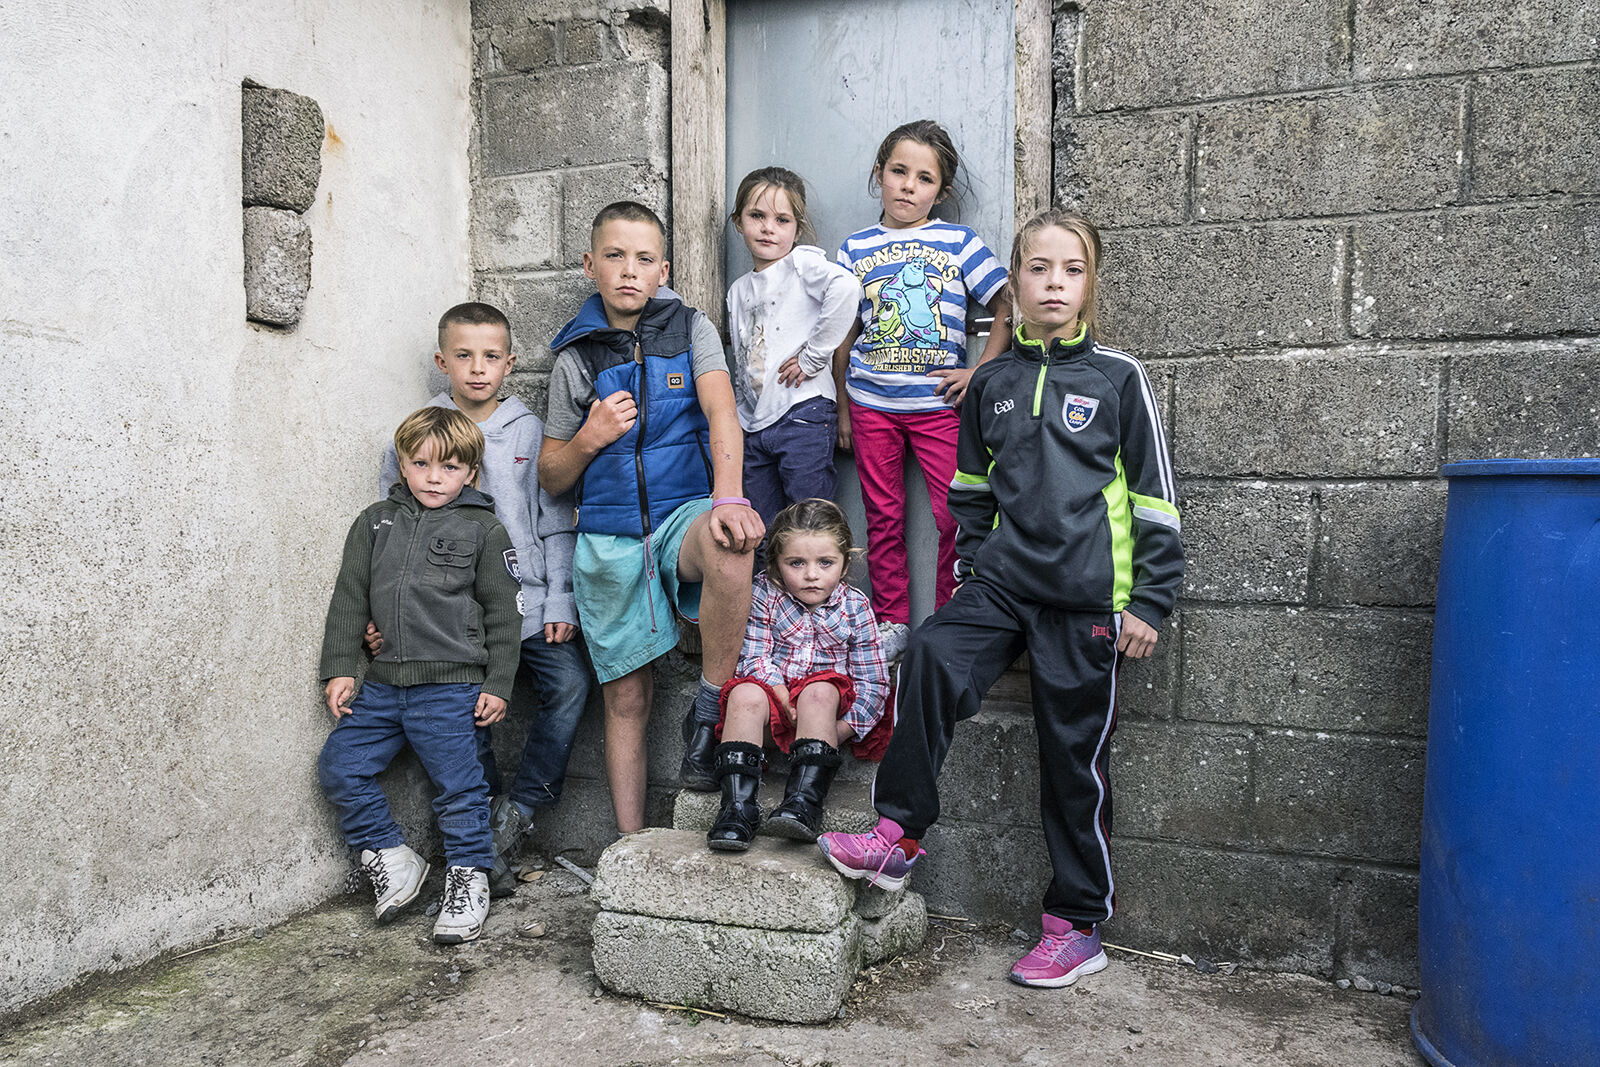 Reilly Siblings, Tipperary, Ireland 2019